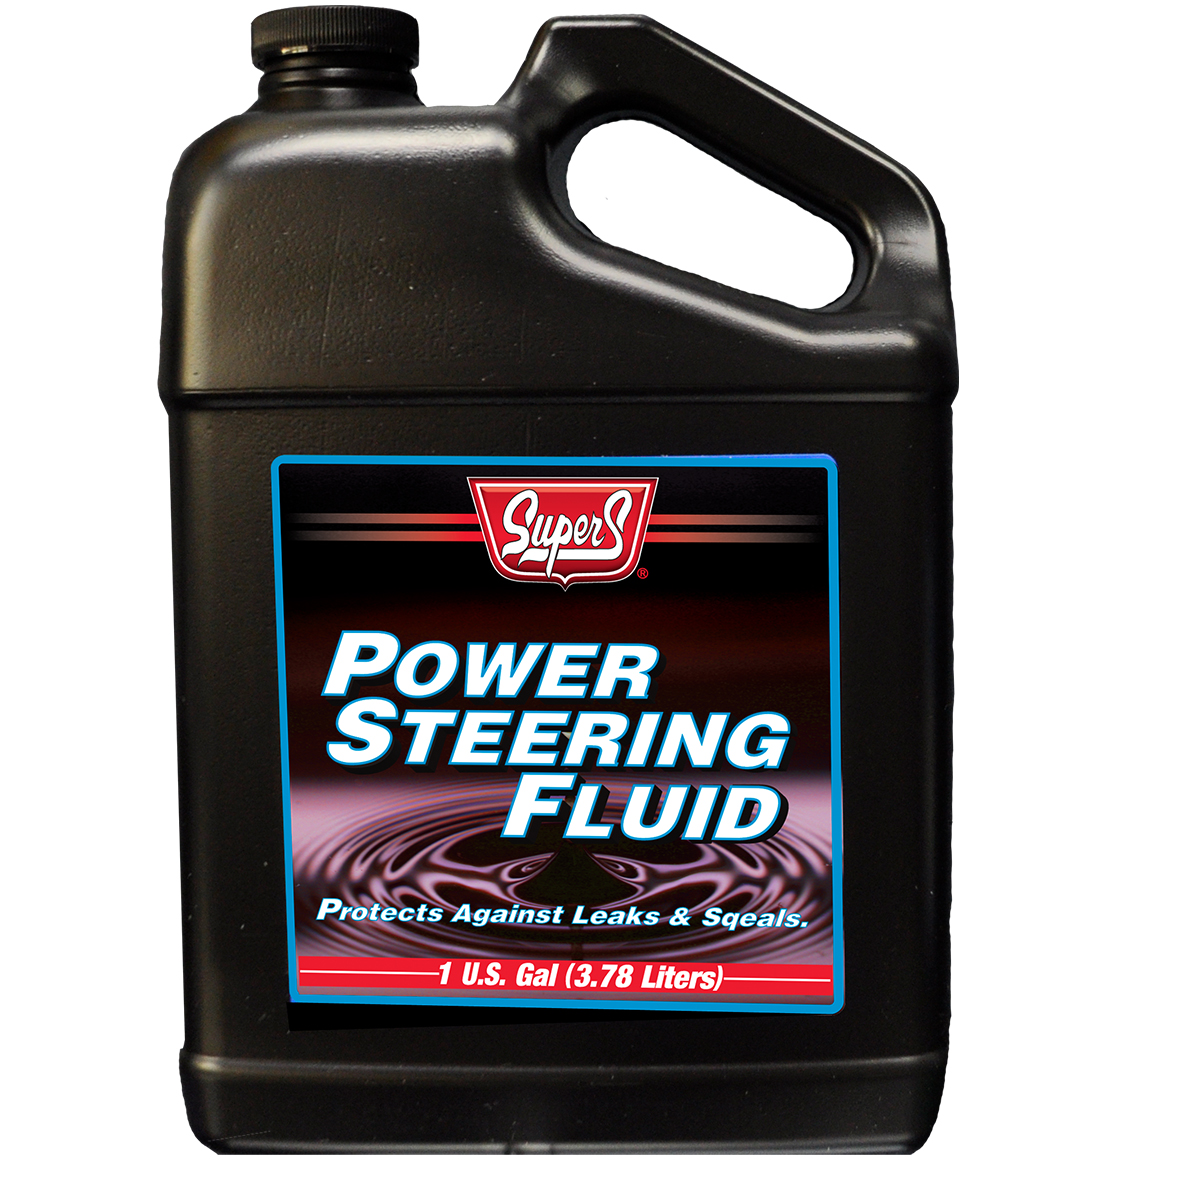 SUPER S POWER STEERING FLUID